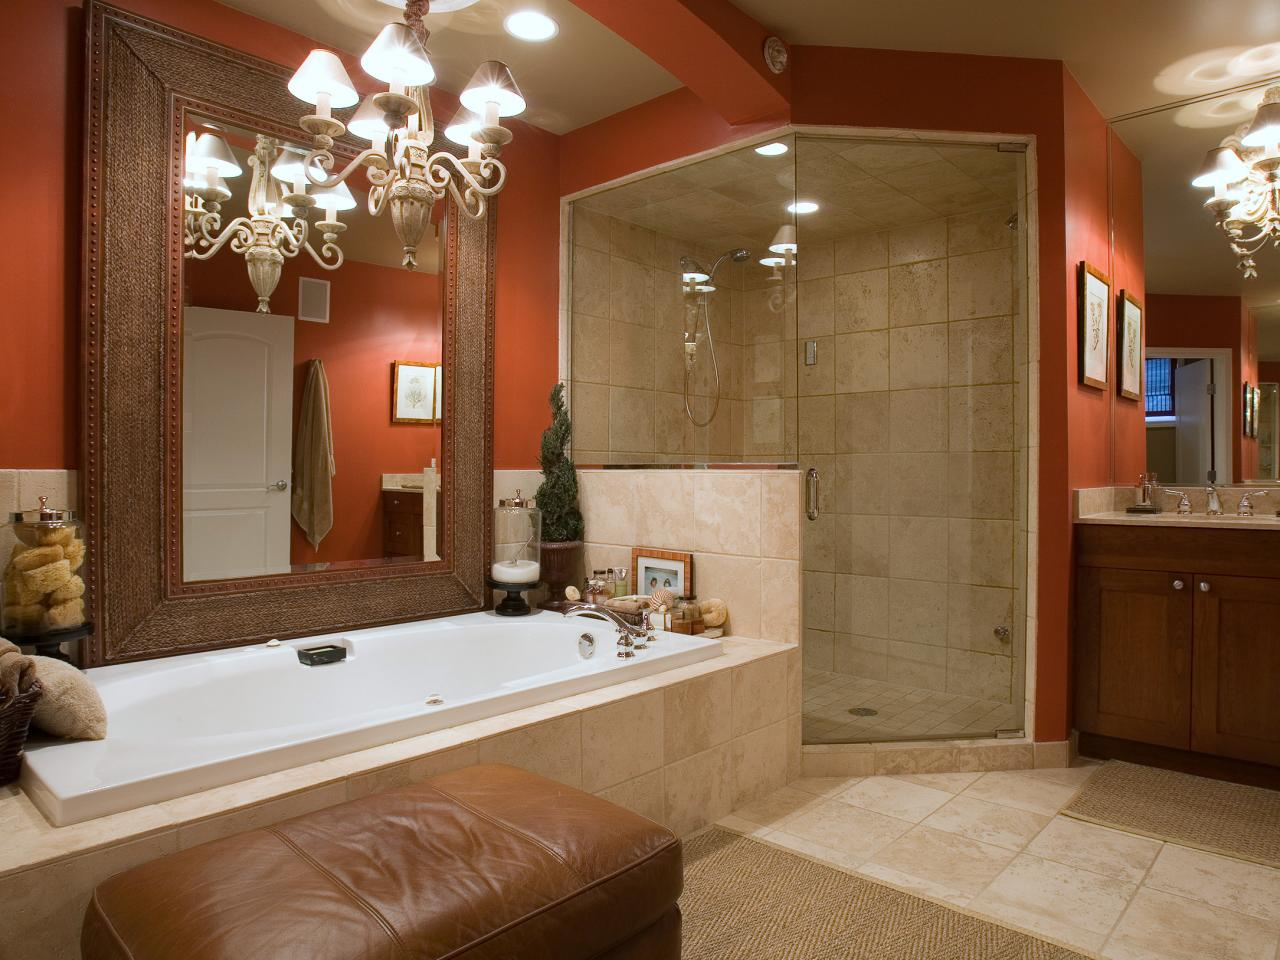 bathroom color scheme some helpful ideas in choosing the bathroom colour schemes 10472